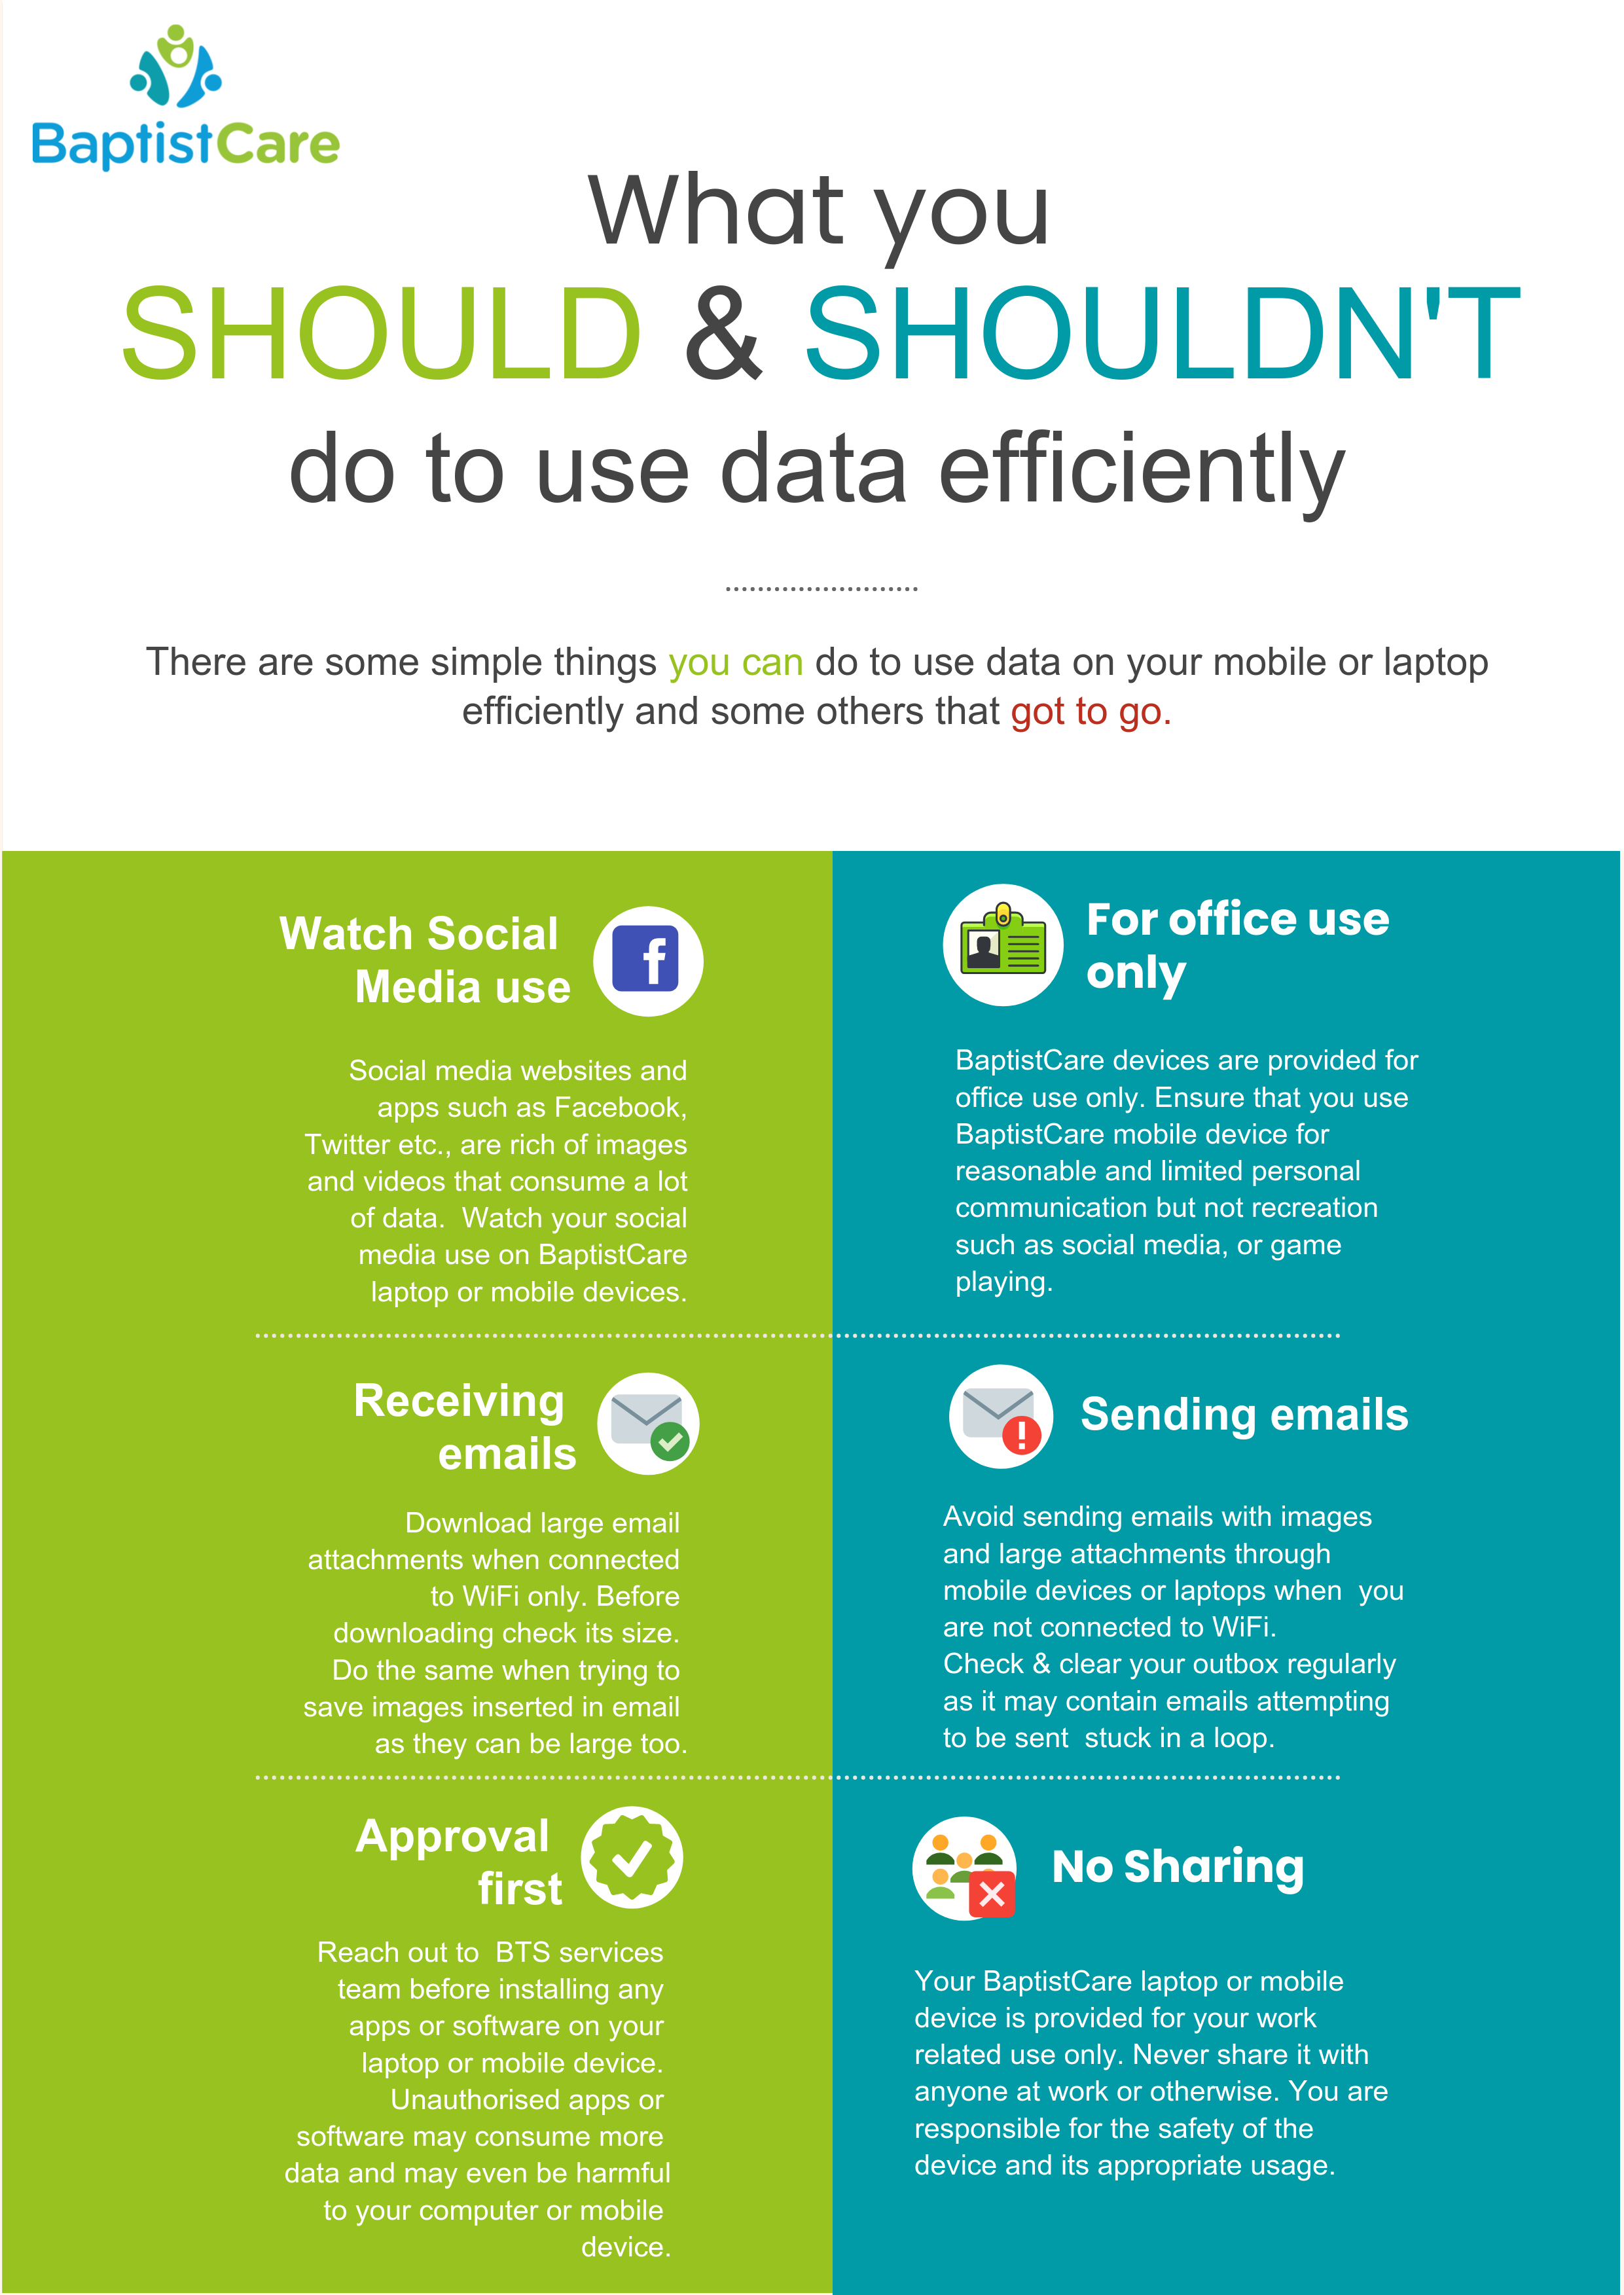 Using Data Efficiently BaptistCare infographic